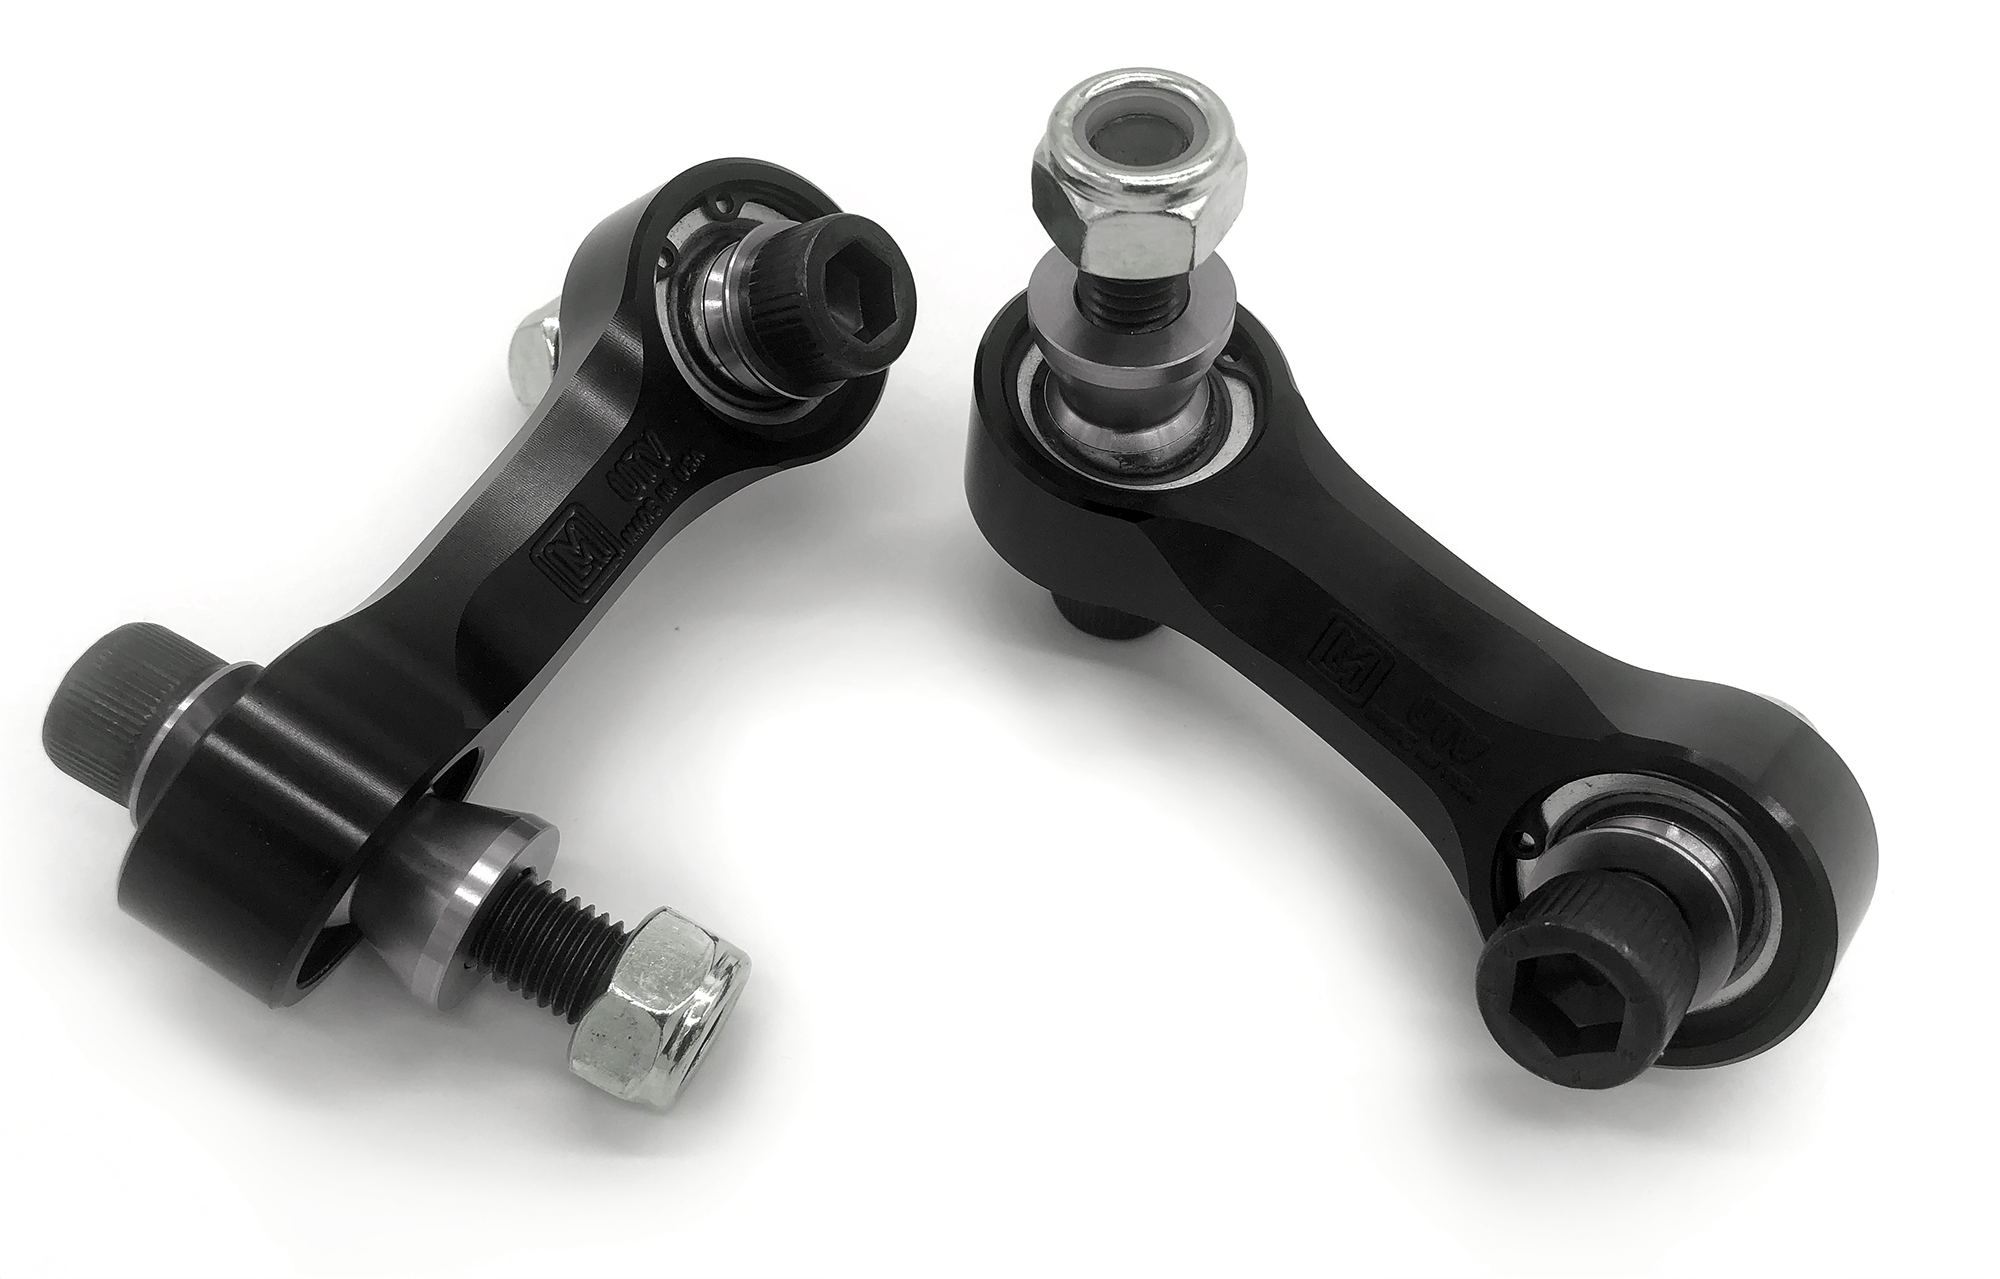 CAN-AM | MAVERICK X3 | Fixed Front Sway Bar Links